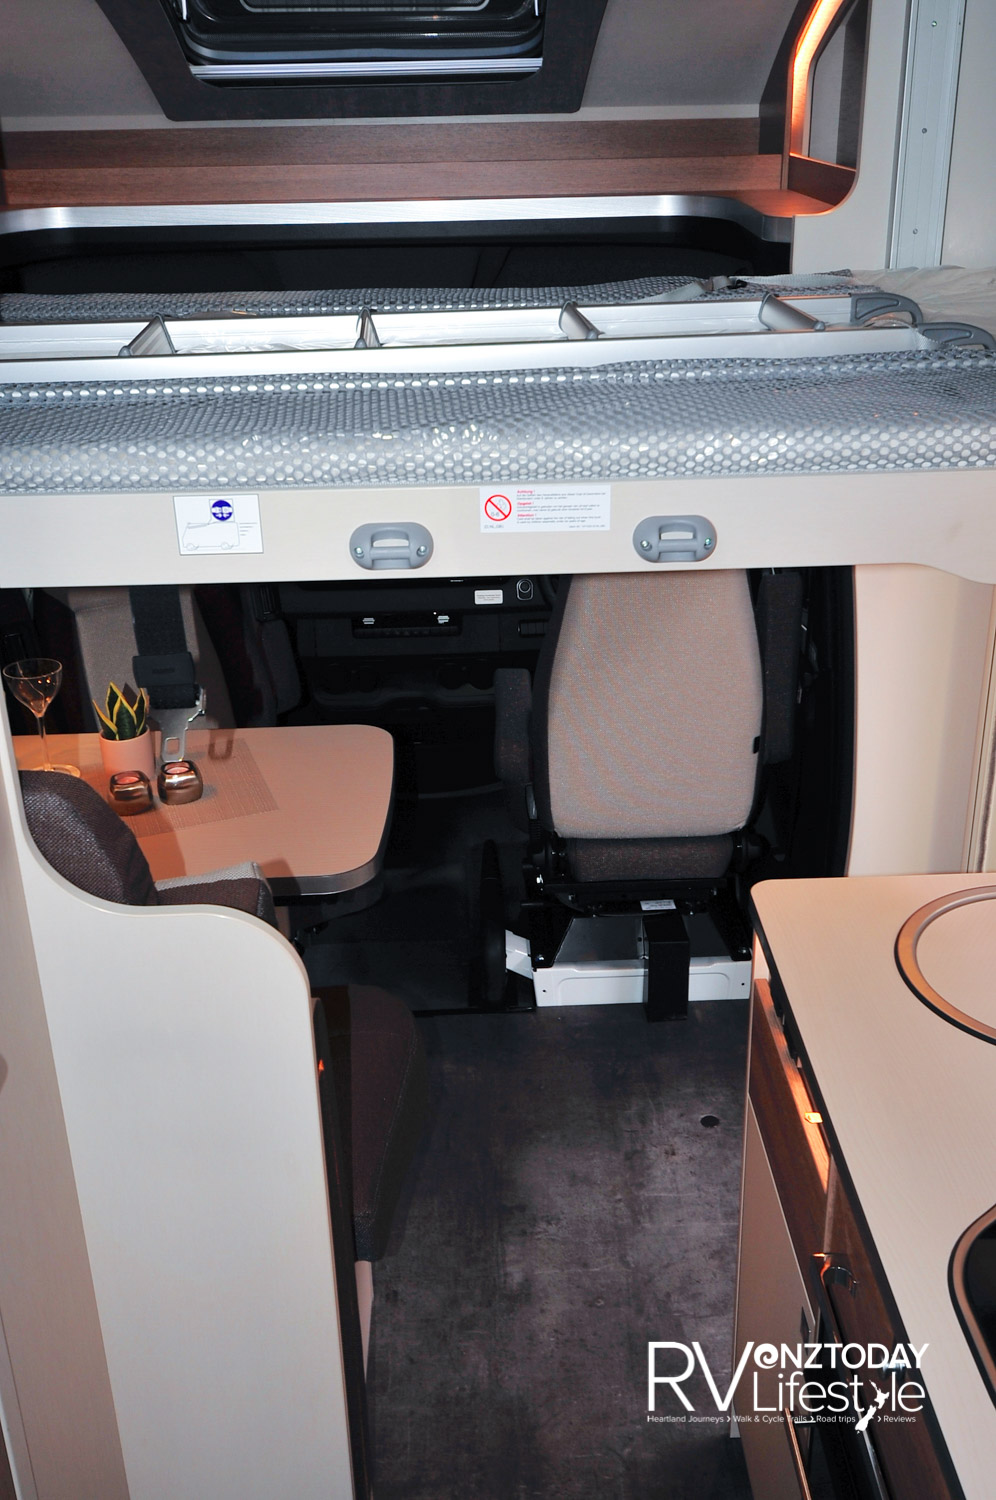 Electric drop-down bed over the dinette area, a single berth but good size at 2000 x 900mm. Open area above the cab in the luton, with storage pods and overhead roof vent